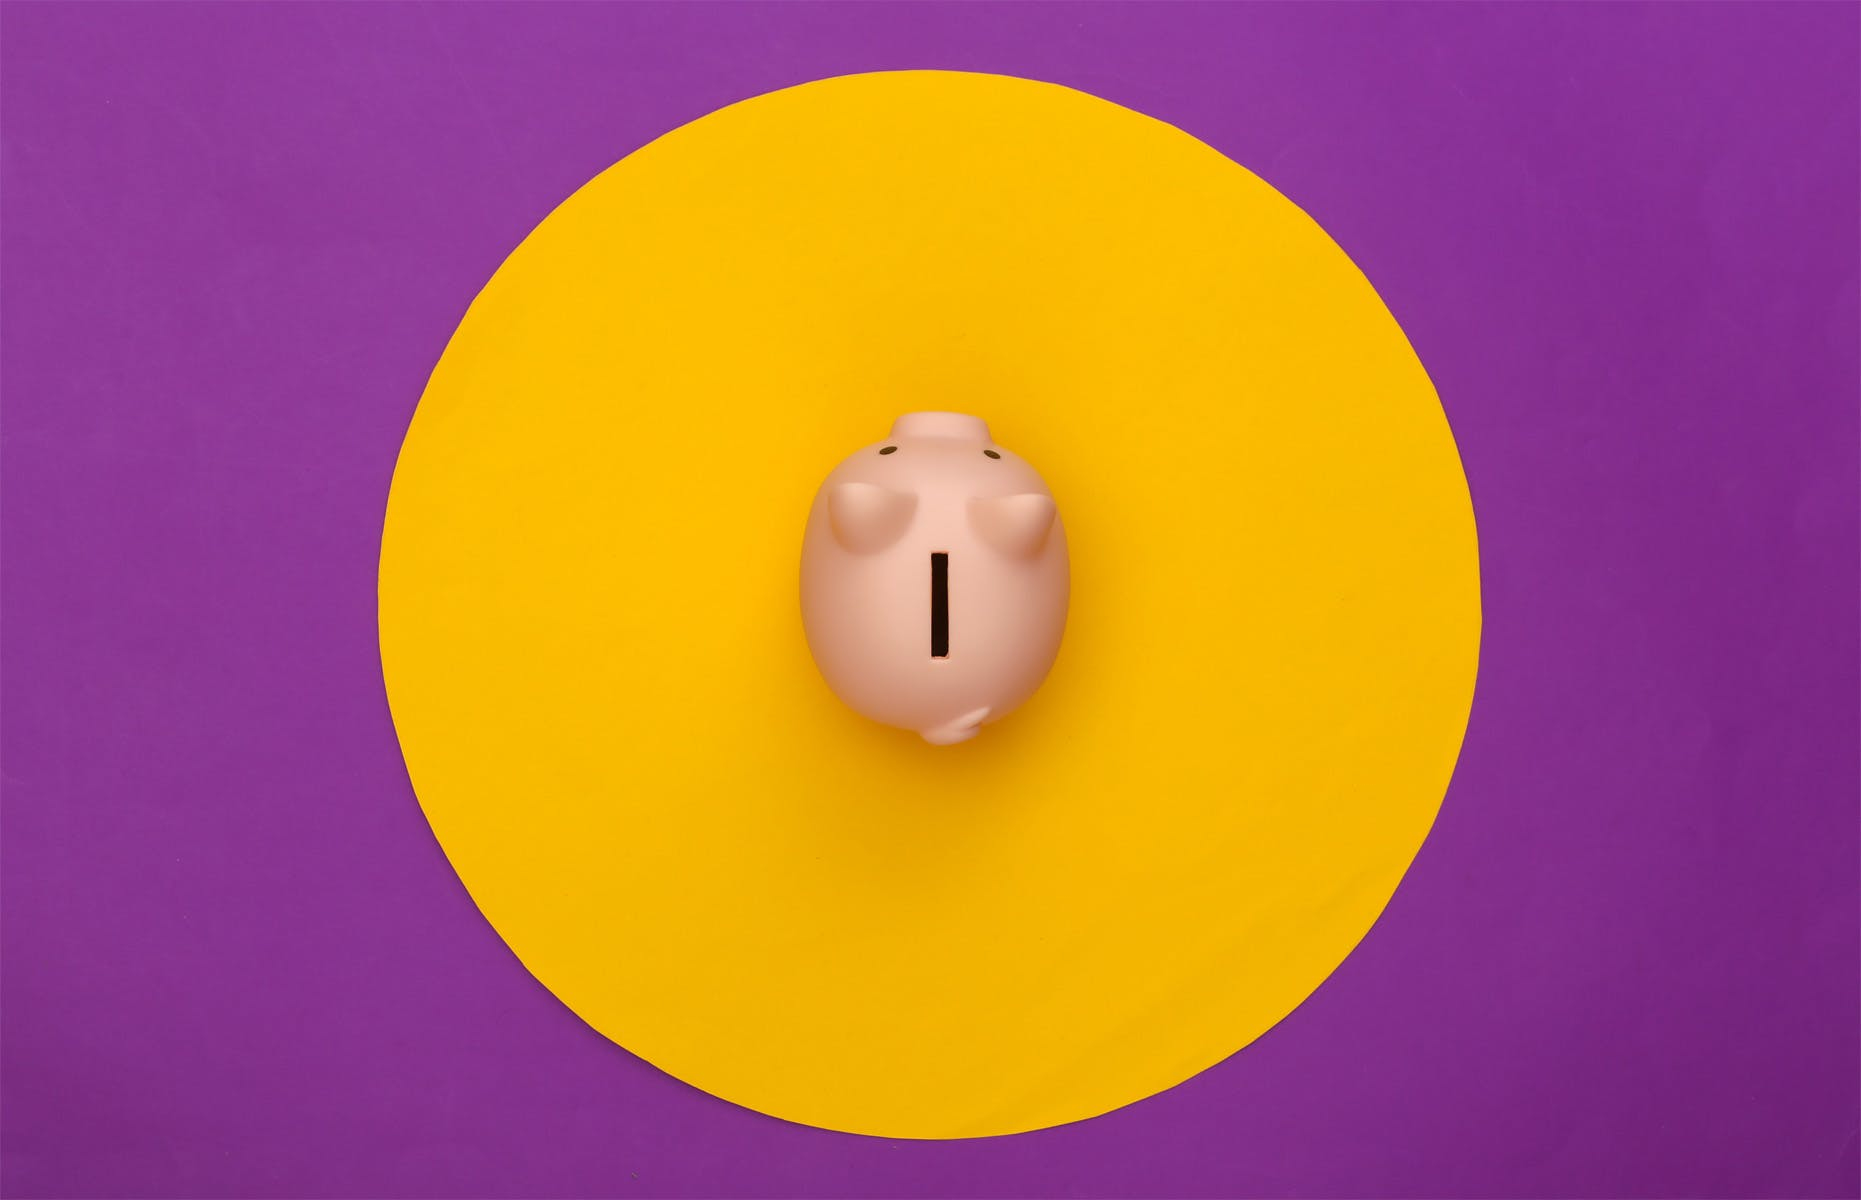 Piggy bank on purple background with yellow circle.